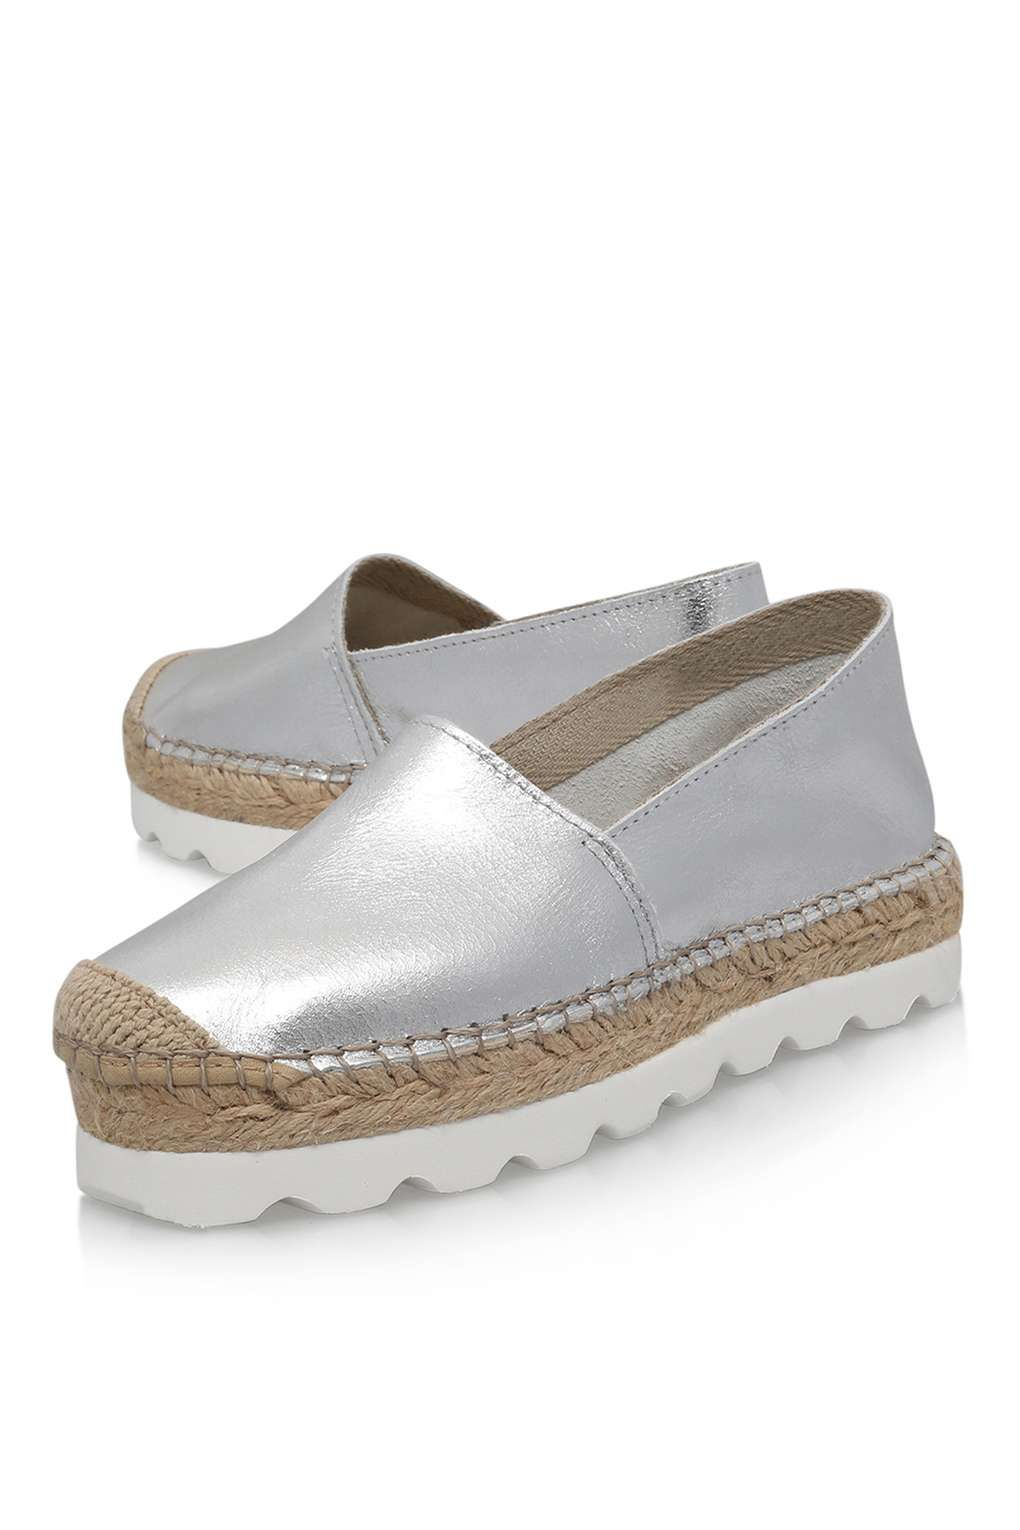 Topshop slip on sneakers